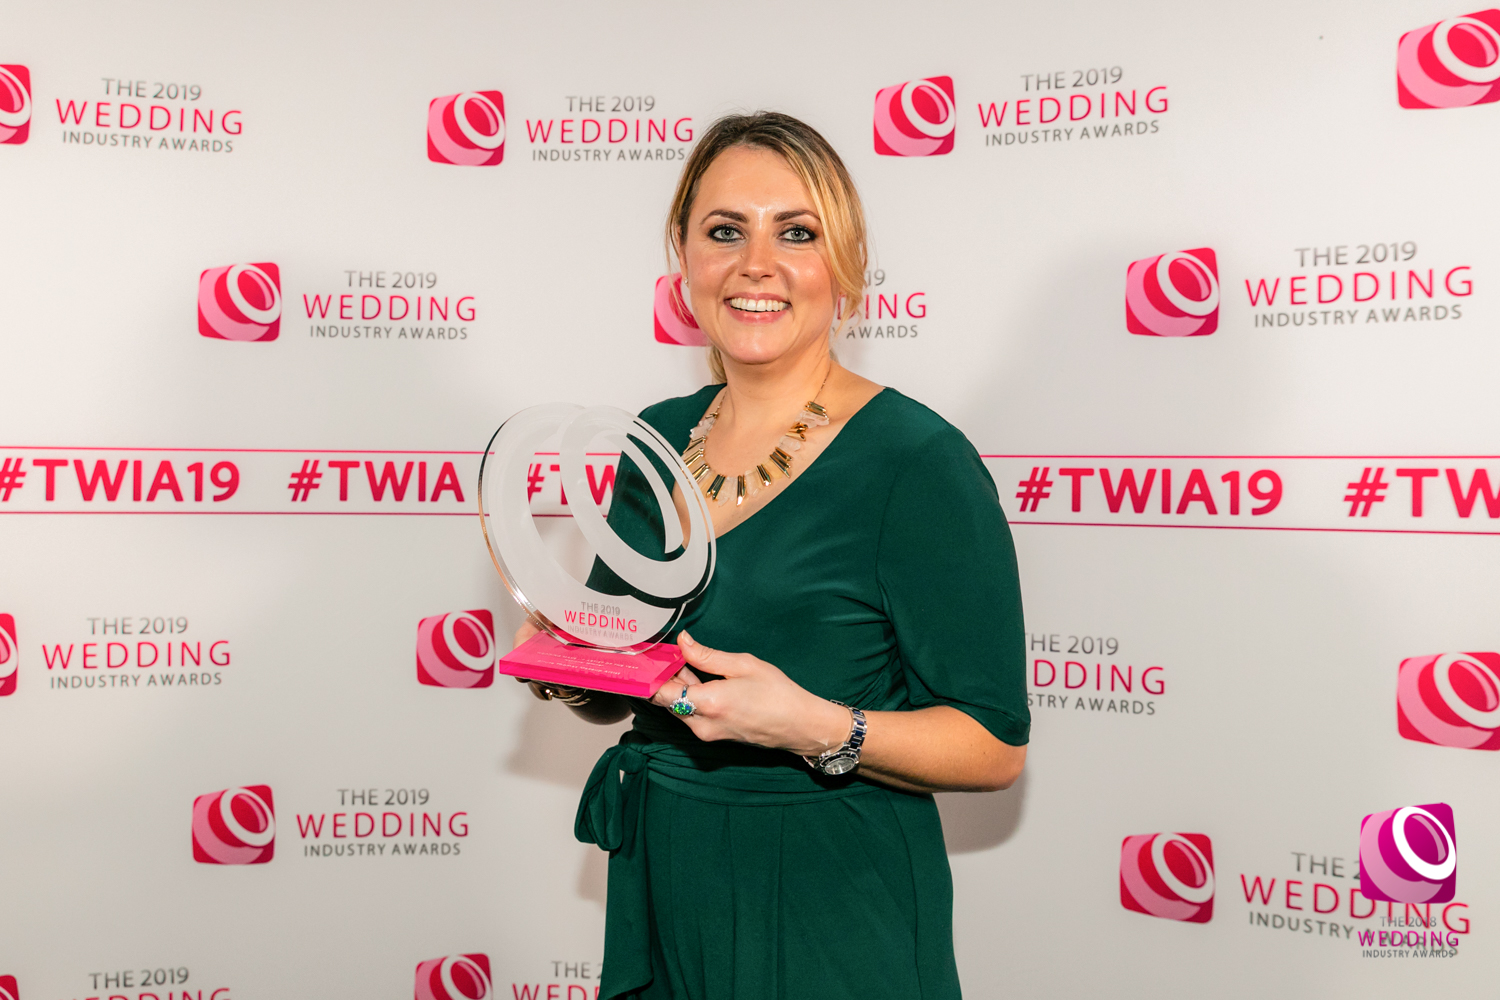 Last year, I applied for The Wedding Industry Awards (TWIA) due to one of my kind photographer friends, Kristida Photography nominating! Find out more on my blog.